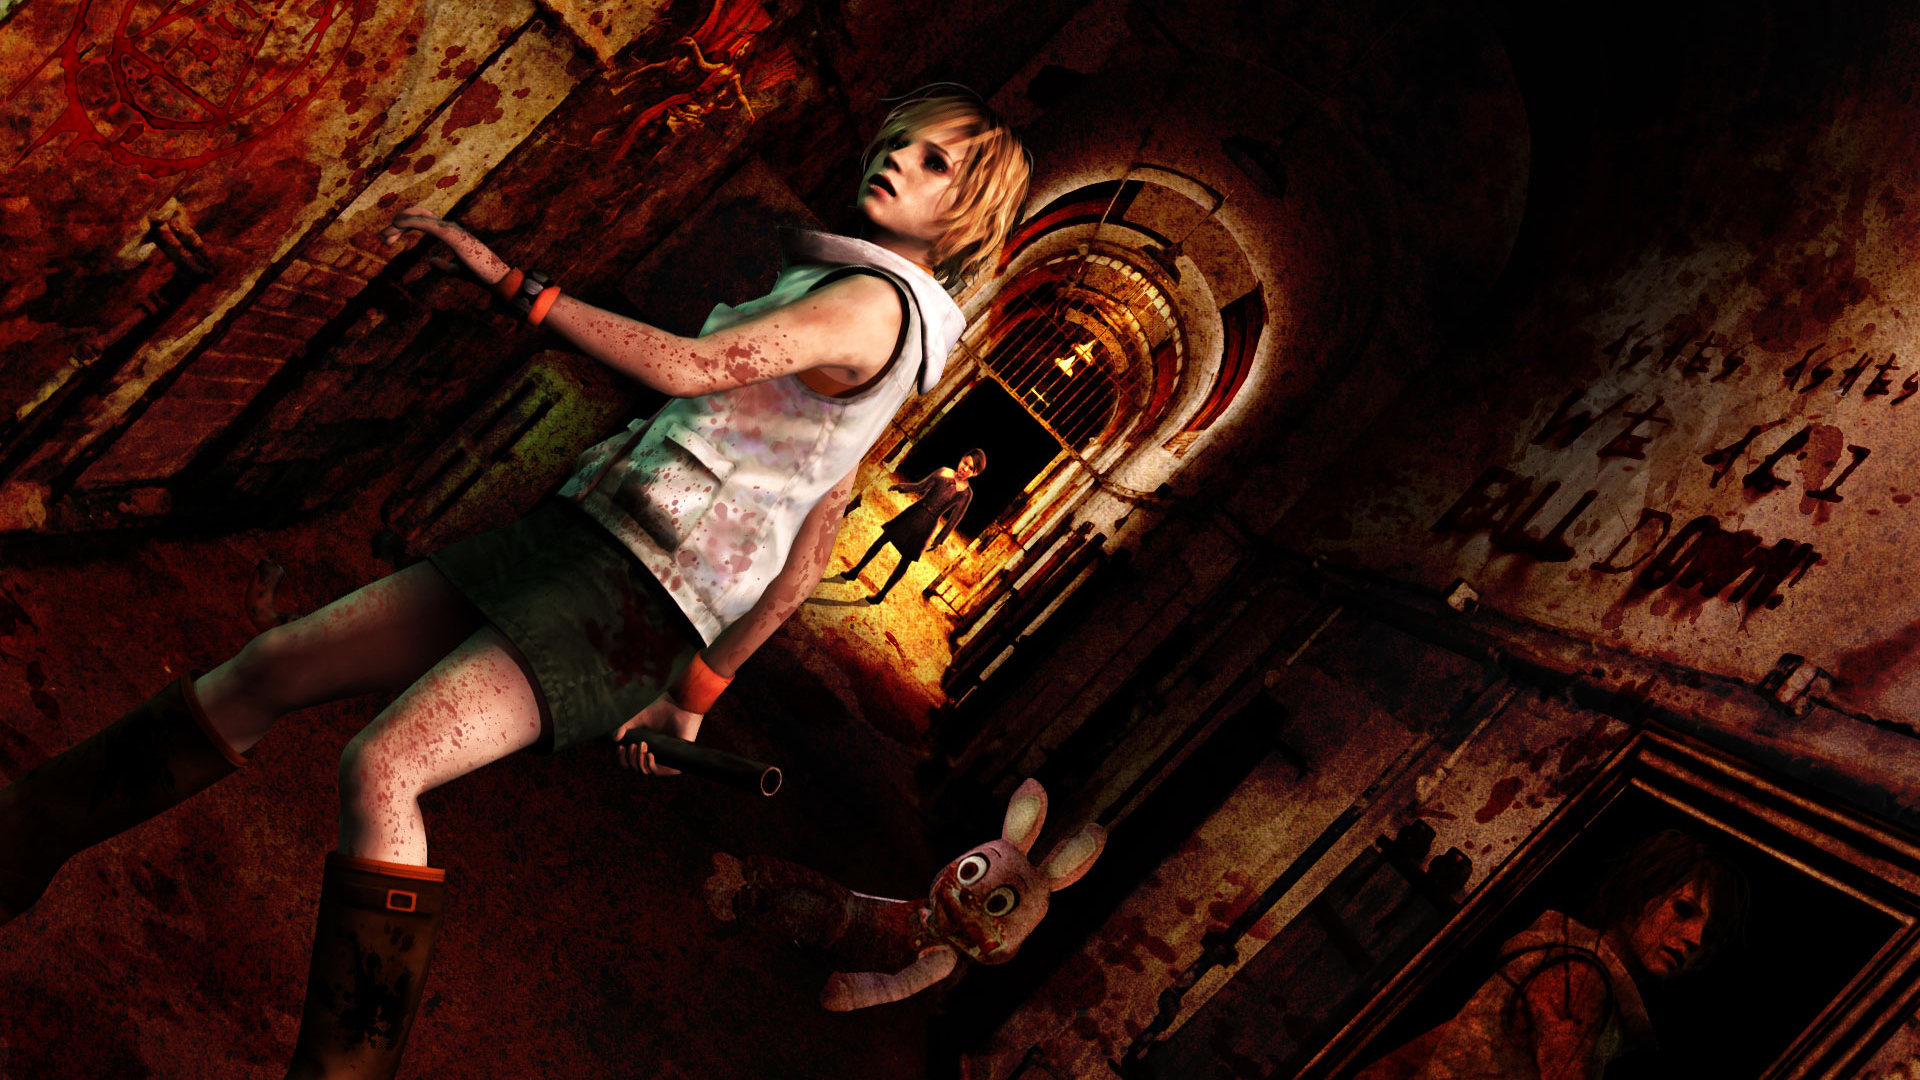 9 Silent Hill 3 Hd Wallpapers  Backgrounds - Wallpaper Abyss-7318